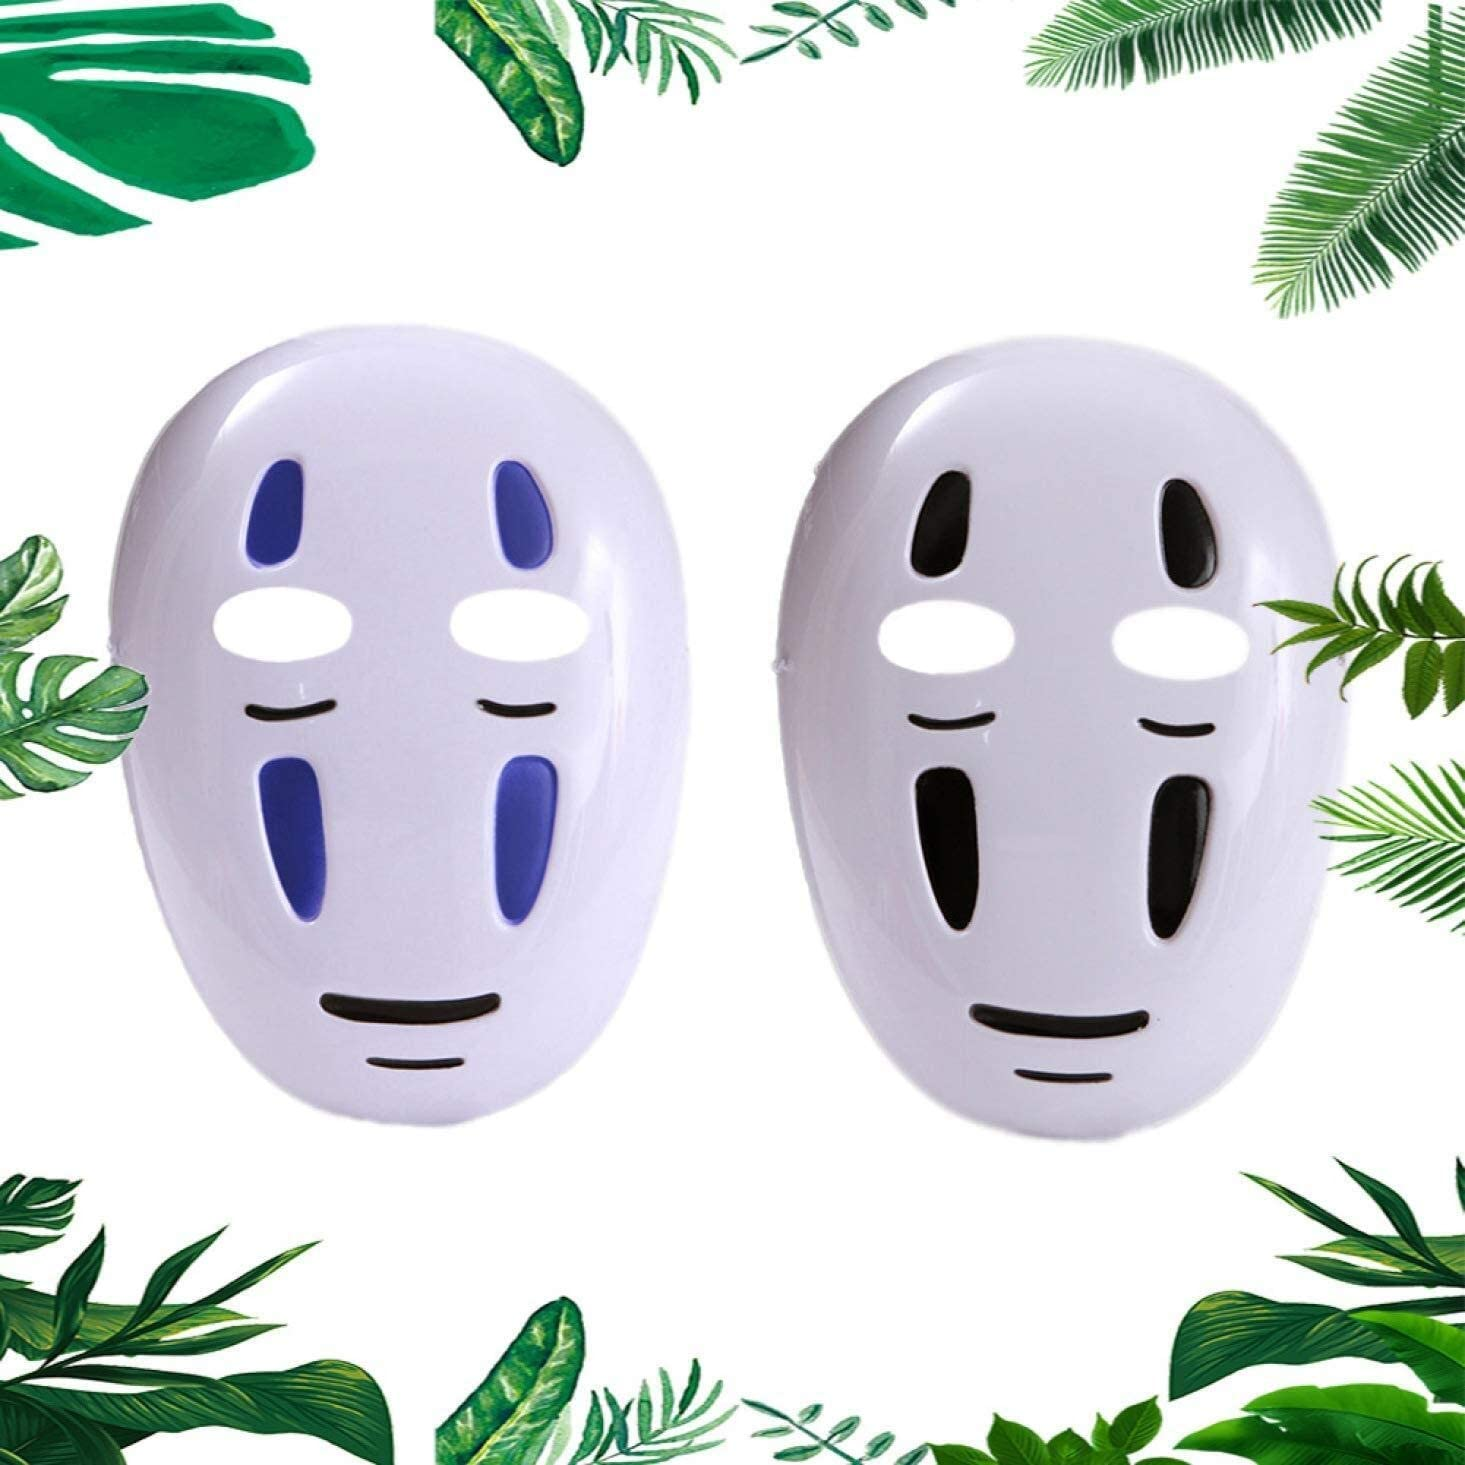 Amazon Com Spirited Away No Face Man Mask Cosplay Poro Halloween Costume Cute Rare Anime 2pcs Color All Home Kitchen